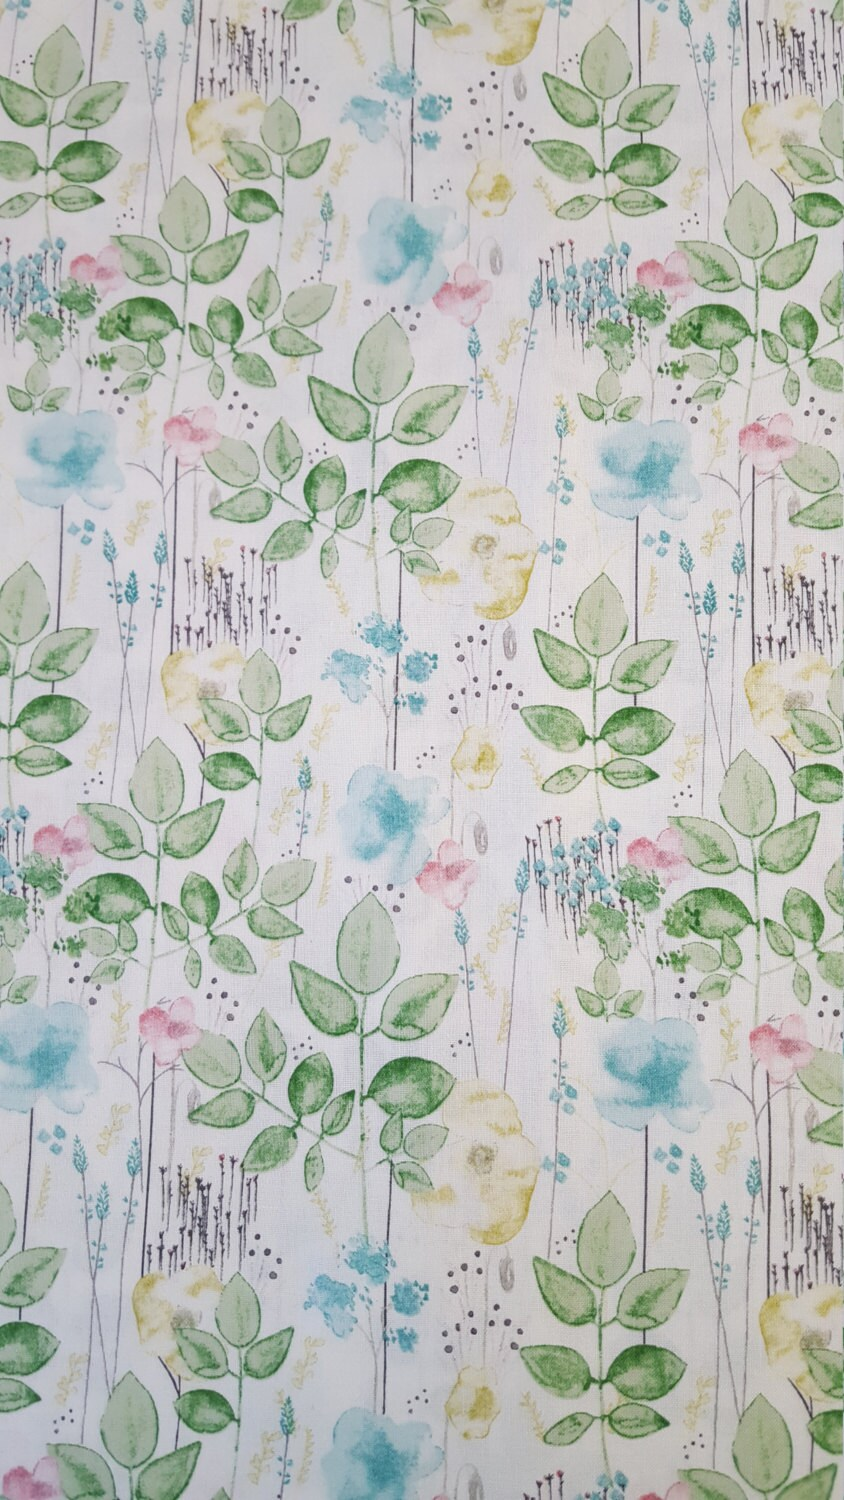 Cotton Fabric In The Garden Watercolor Floral On White 1